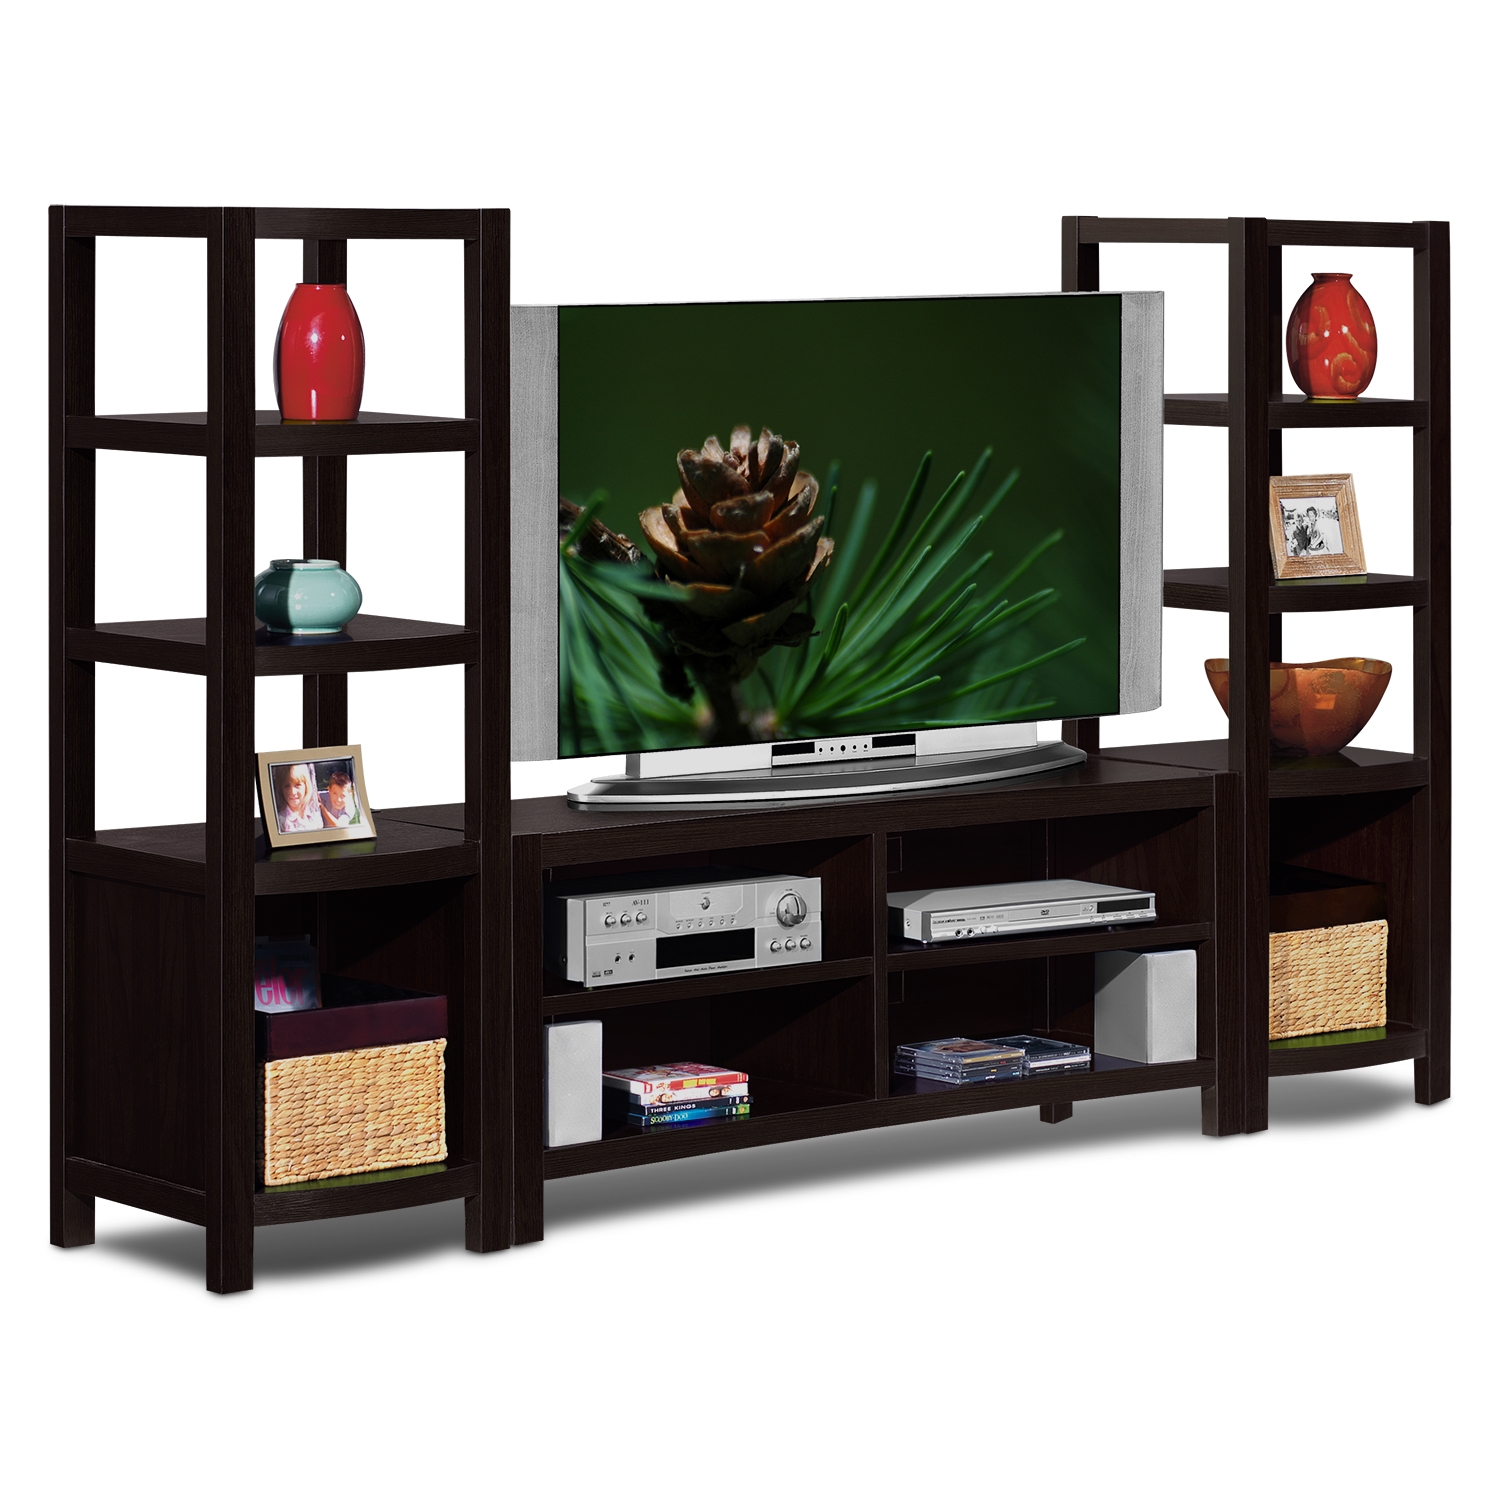 Tell You How To Build An Entertainment Wall Unit Share Furniture Repair Buying Guide For Cheap Wood Furniture Tips